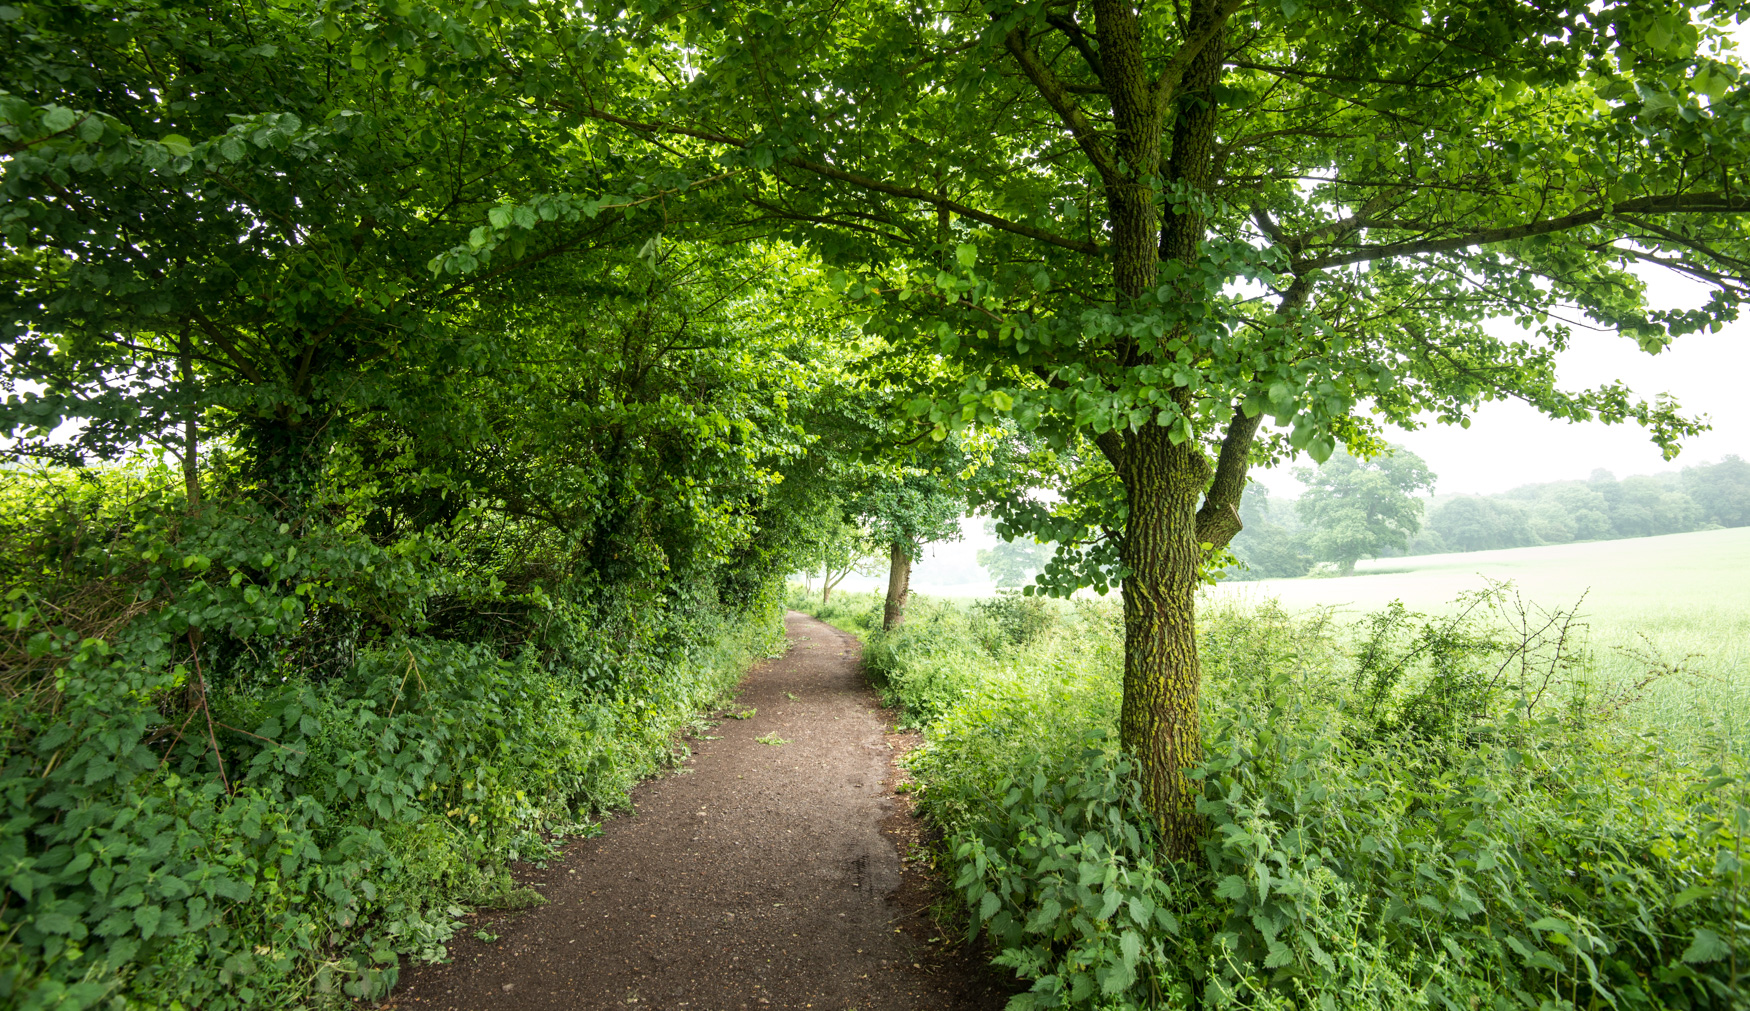 English elm line the path towards Kingley Vale